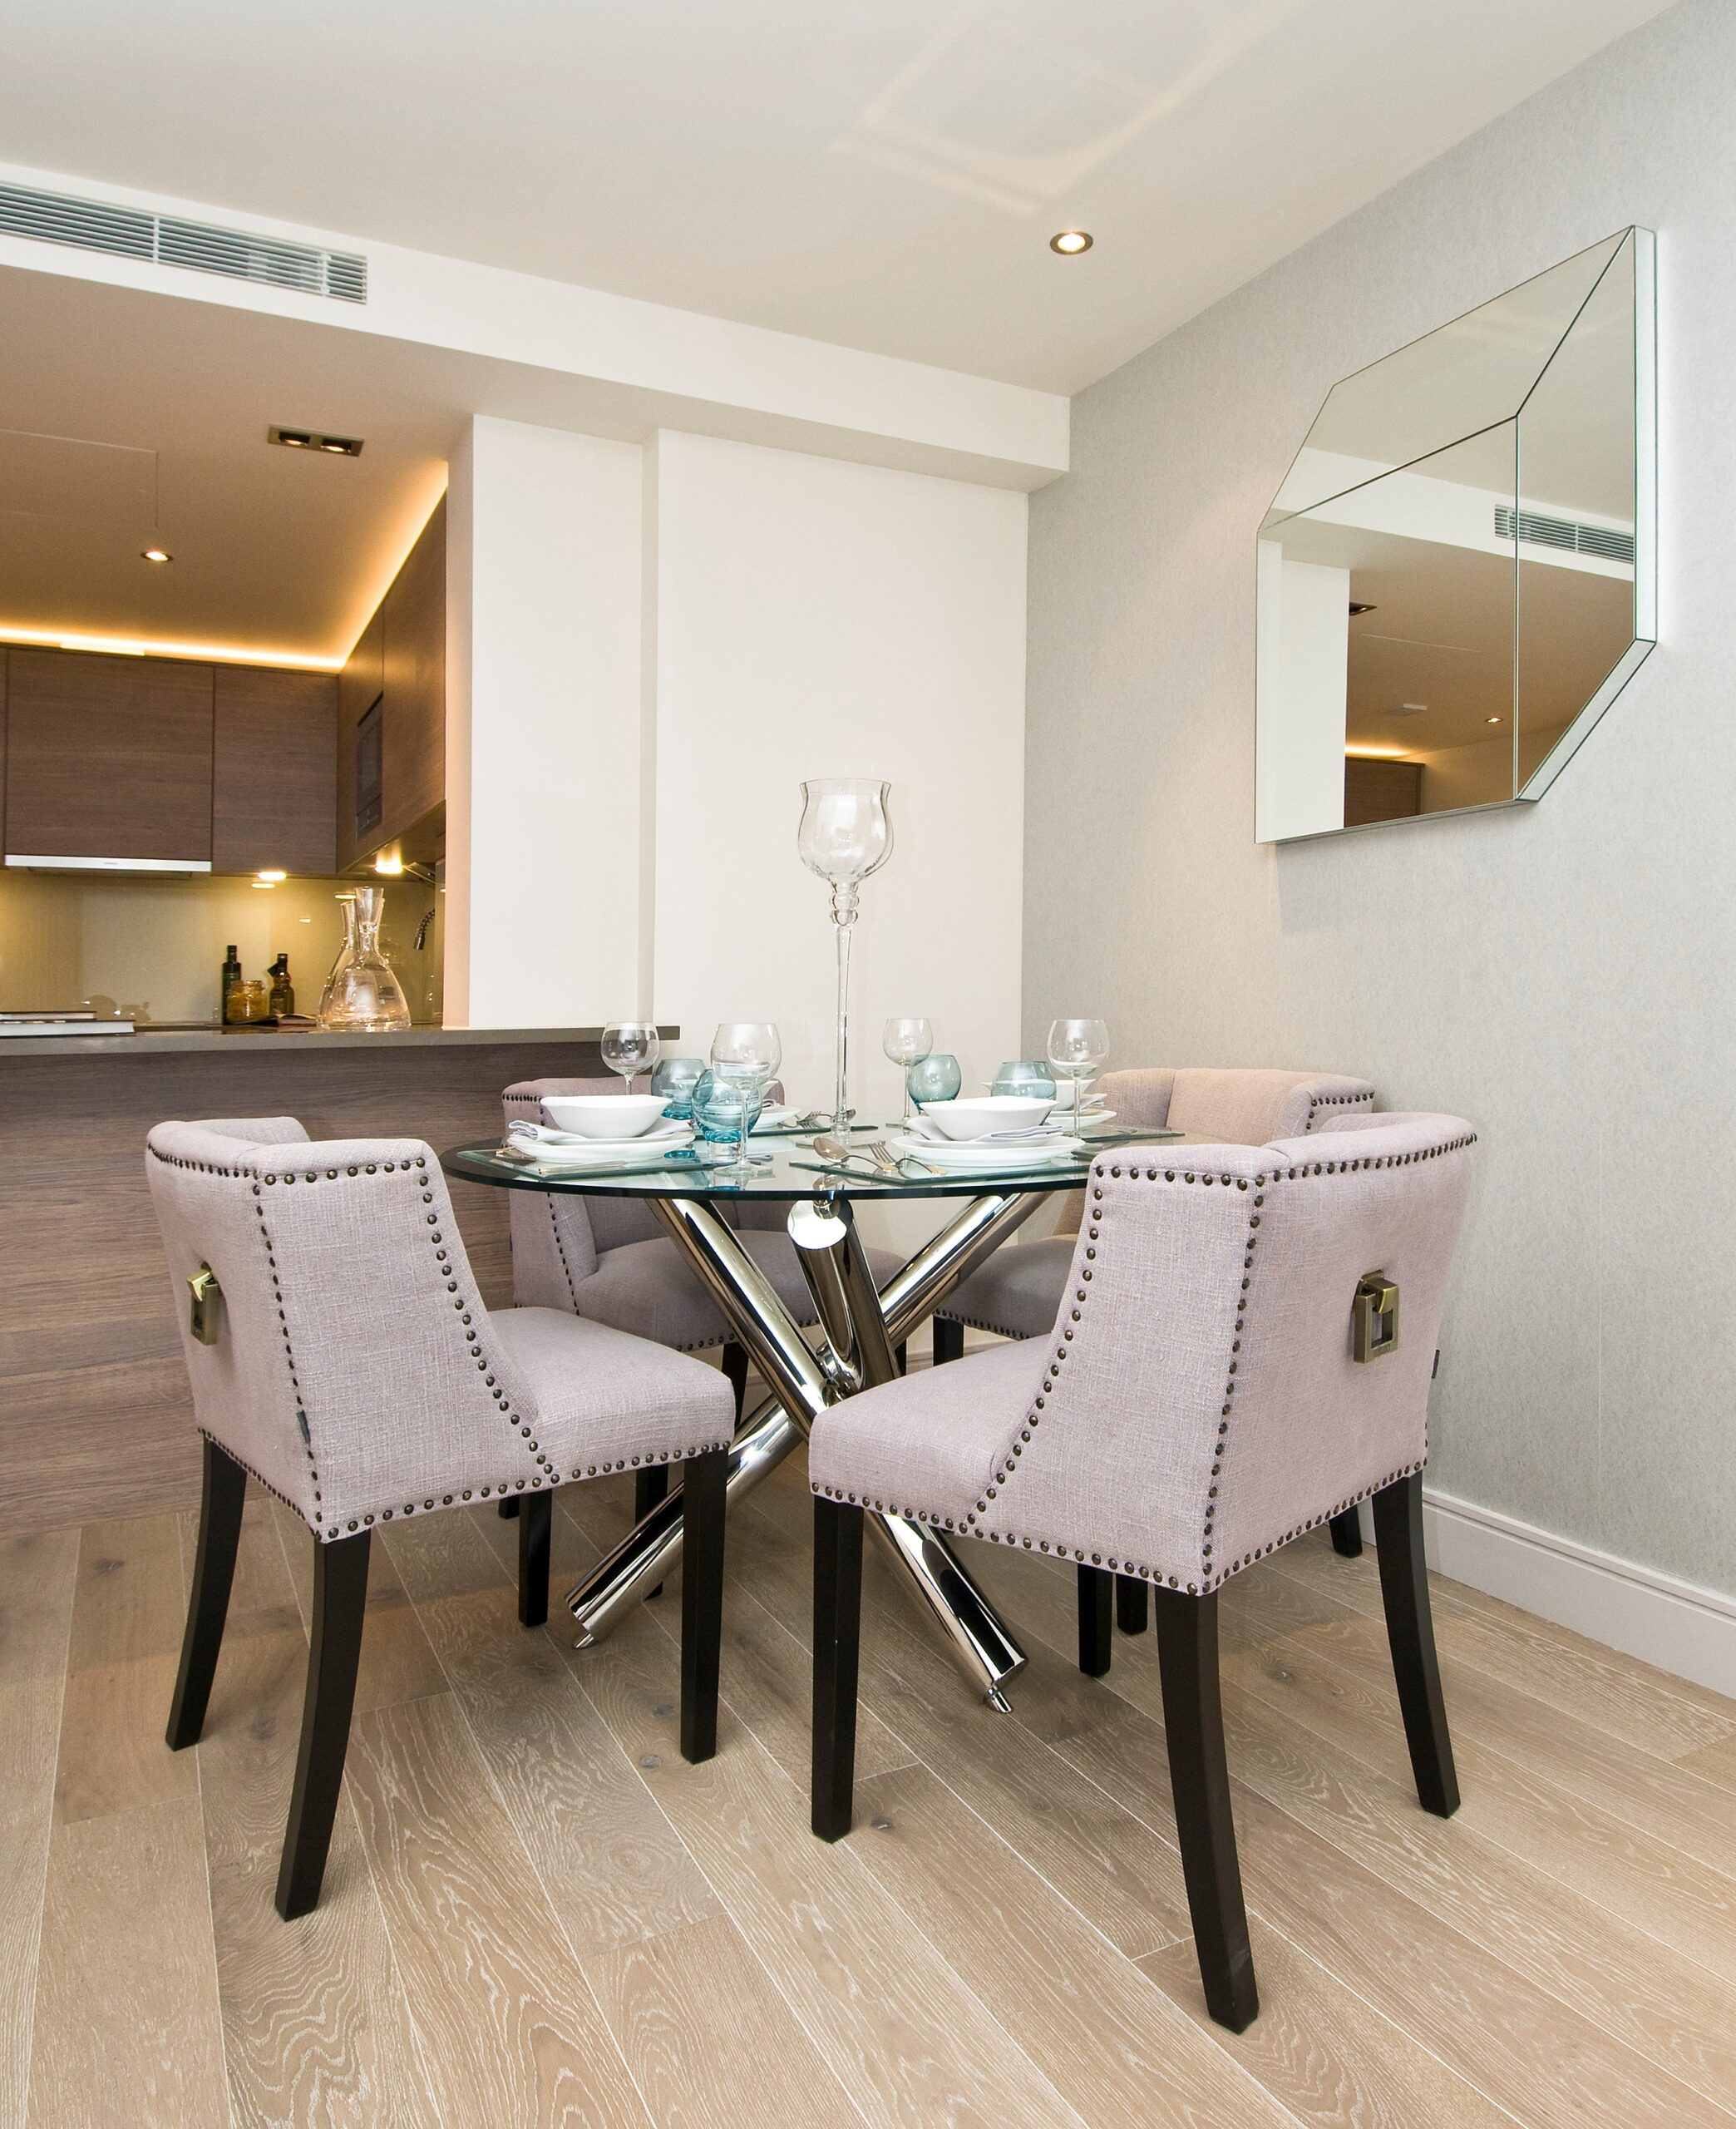 Dining Area Furnishing Package Gallery